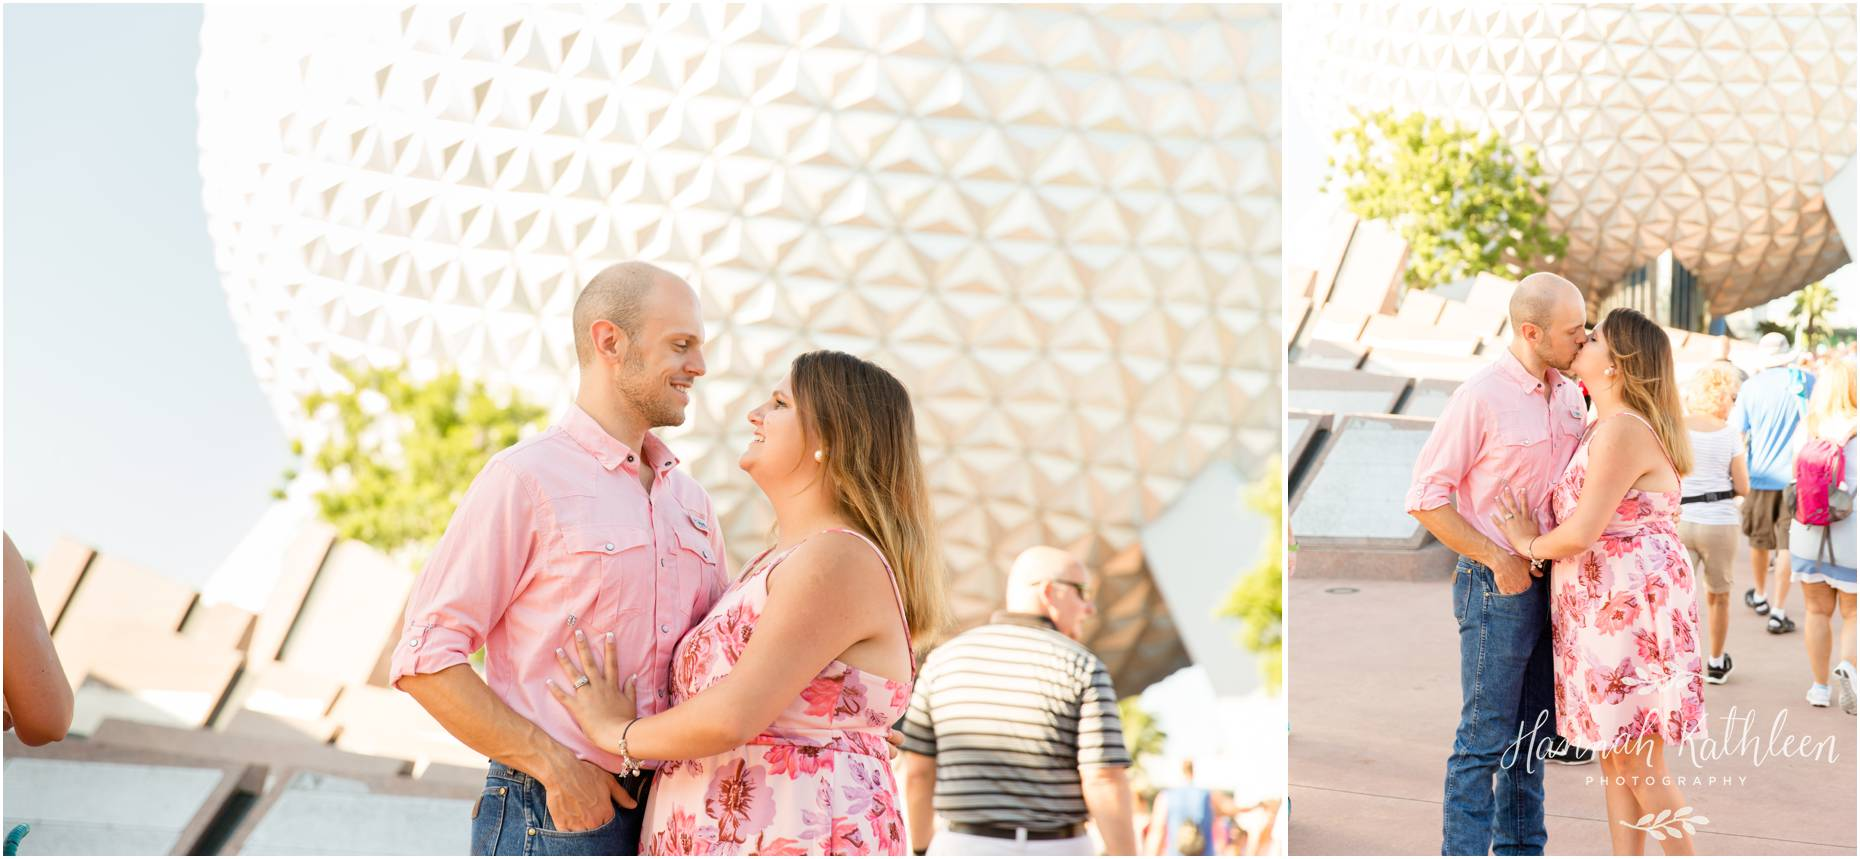 Abbott_Epcot_Disney_World_Couple_Photography